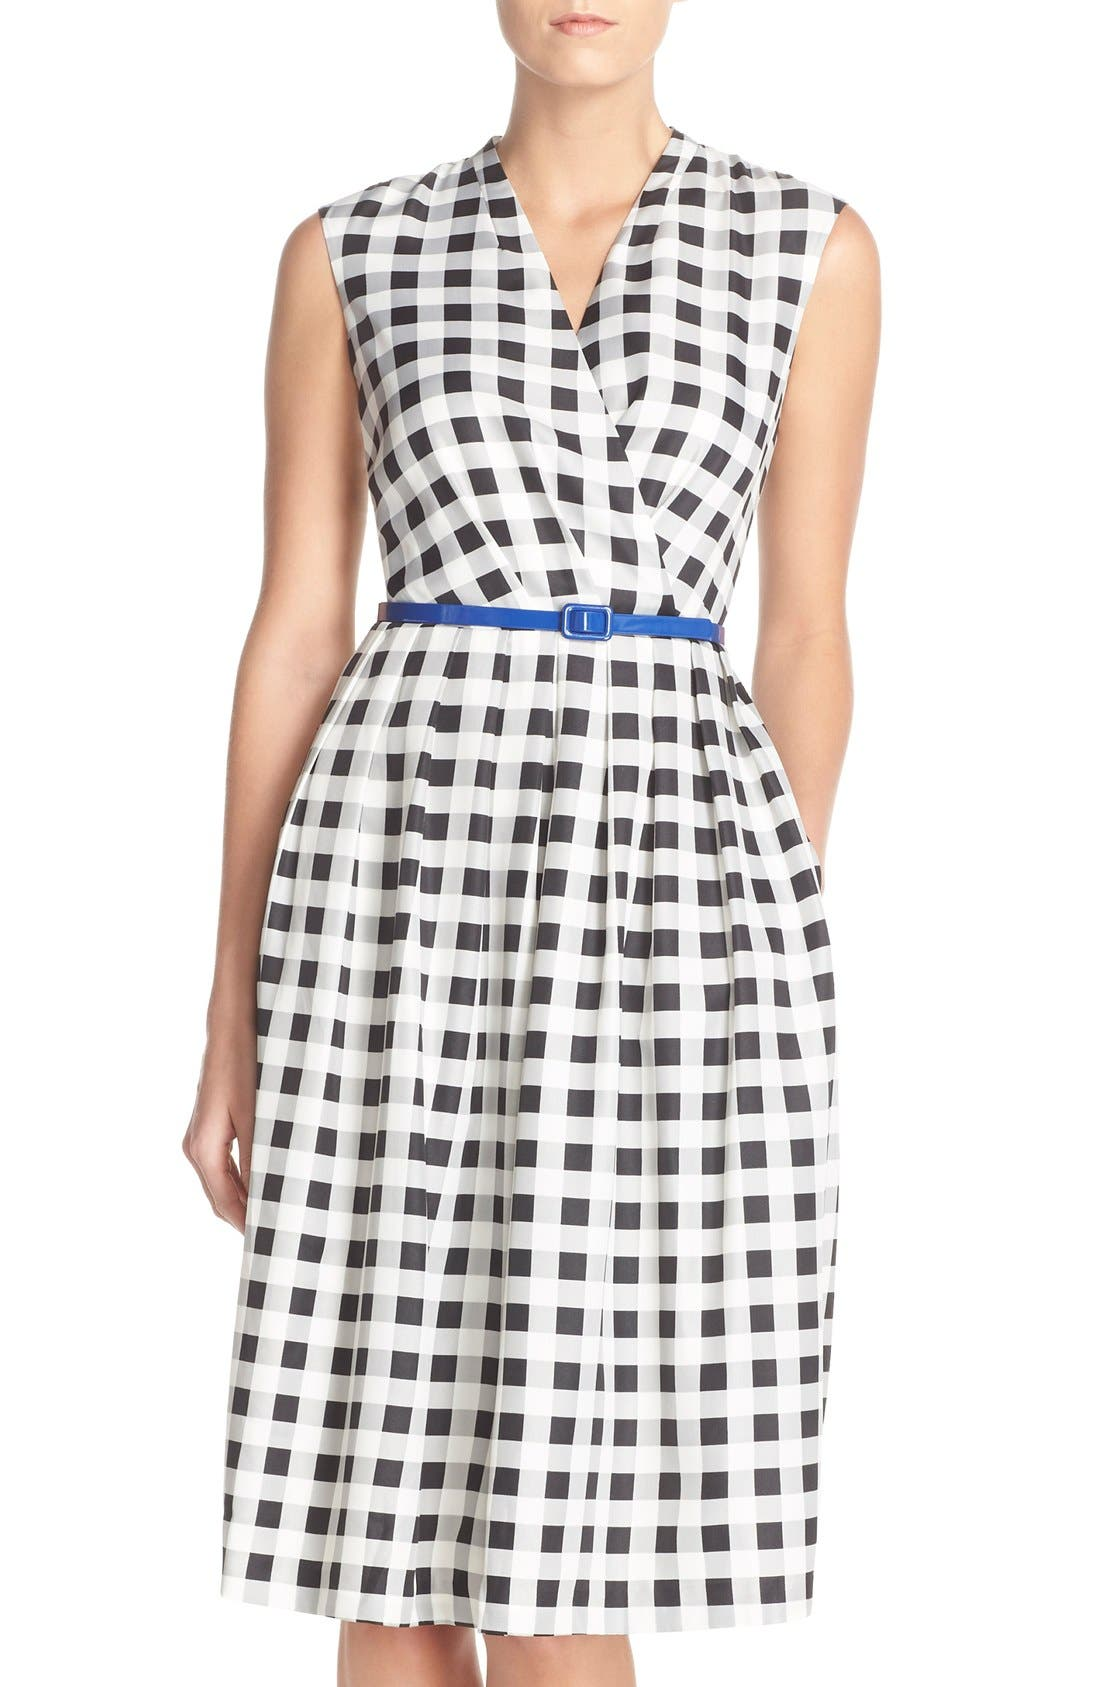 Alternate Image 1 Selected - Ellen Tracy Gingham Twill Fit & Flare Dress (Regular & Petite)